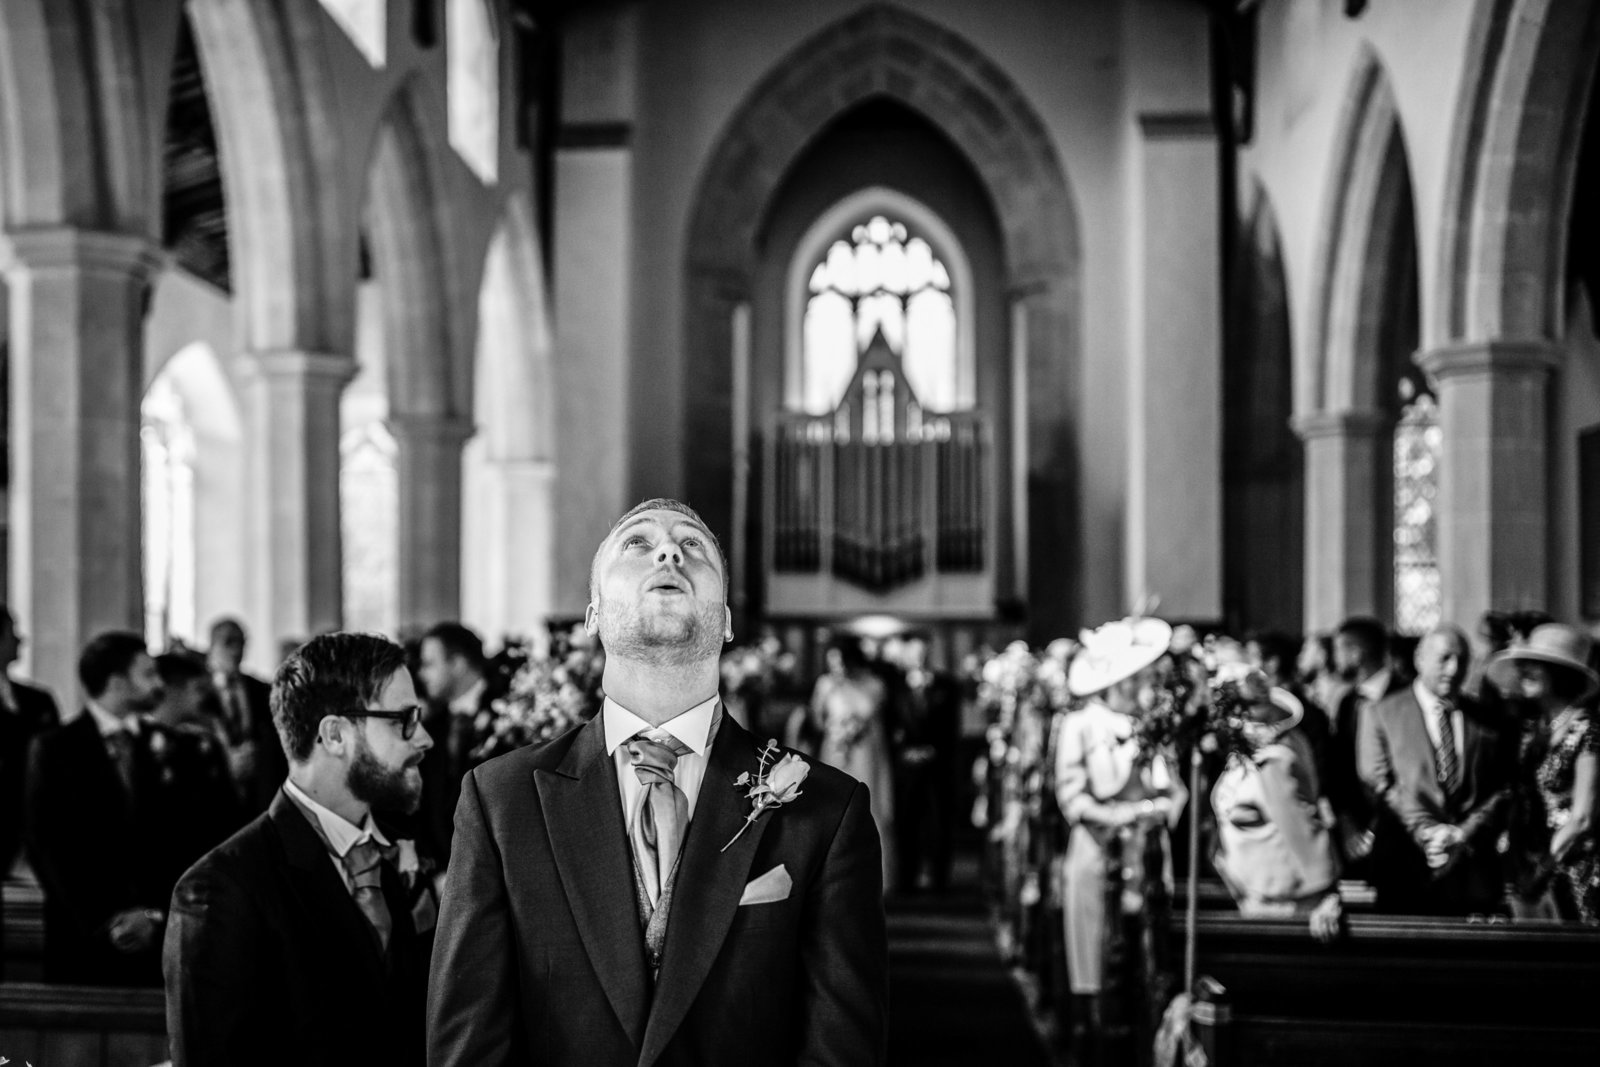 Nervous Groom waits at altar for his Bride to arrive, he looks up to the ceiling nervously in a traditional Suffolk church.